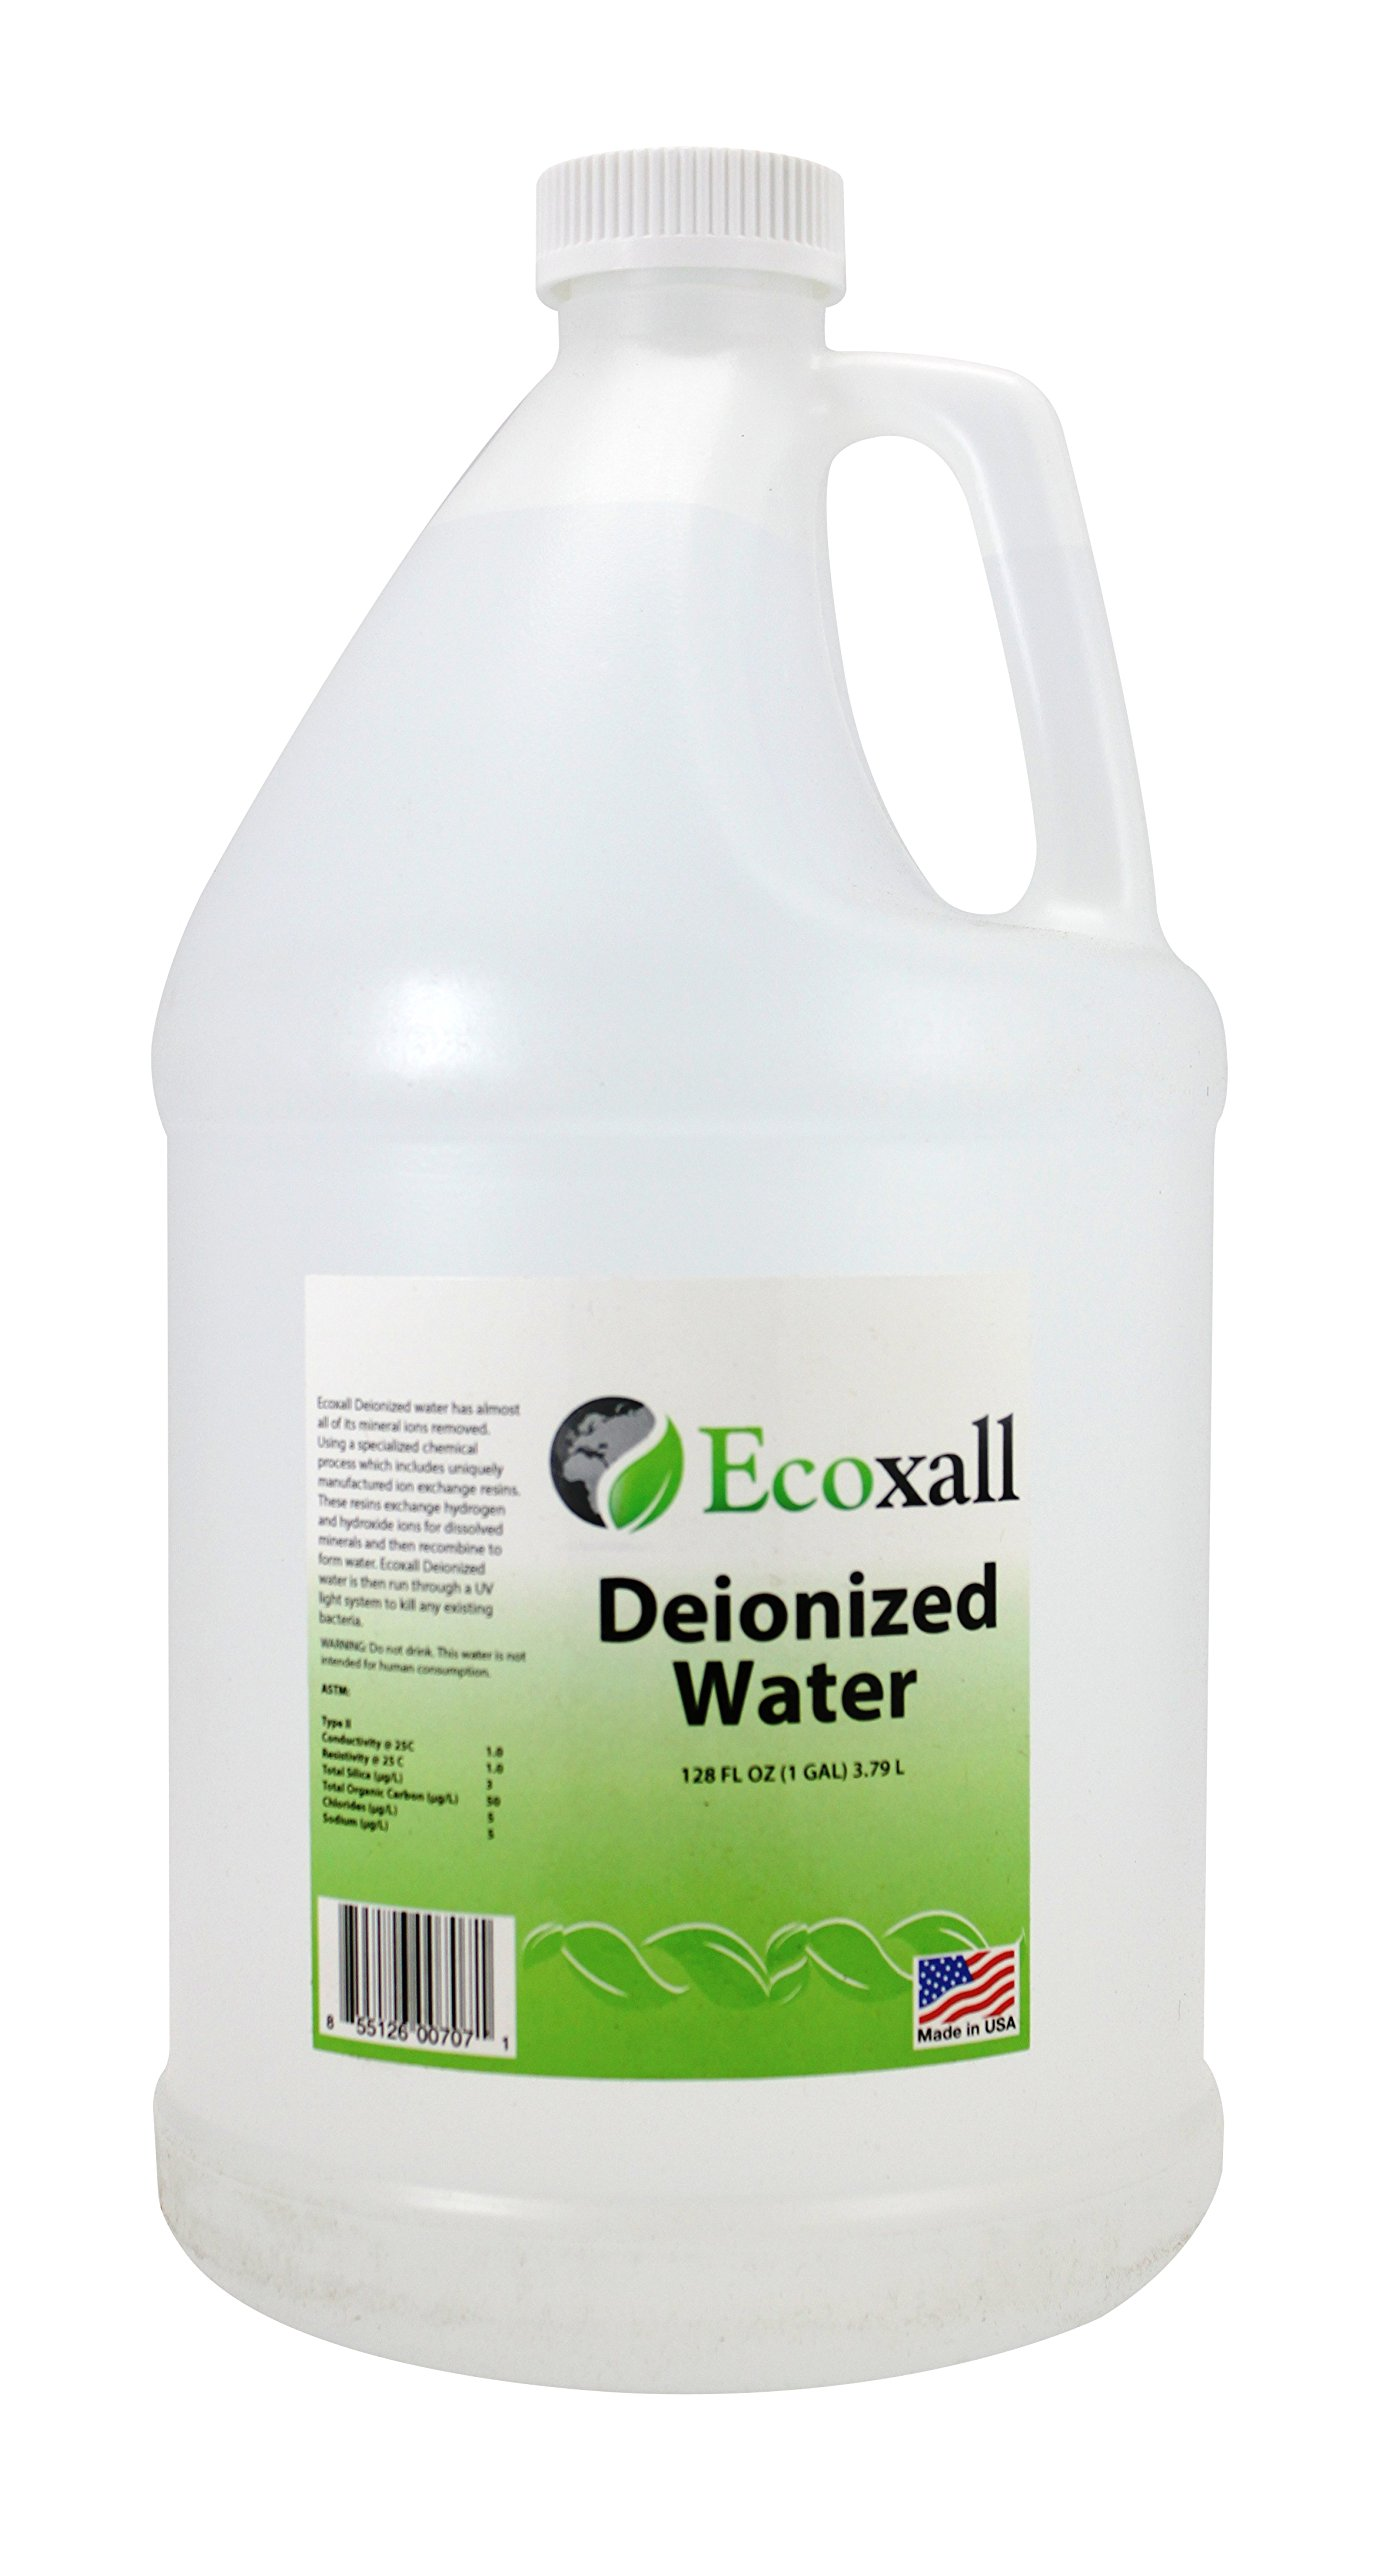 Ecoxall - Deionized Water - 1 Gallon jug by Ecoxall Chemicals